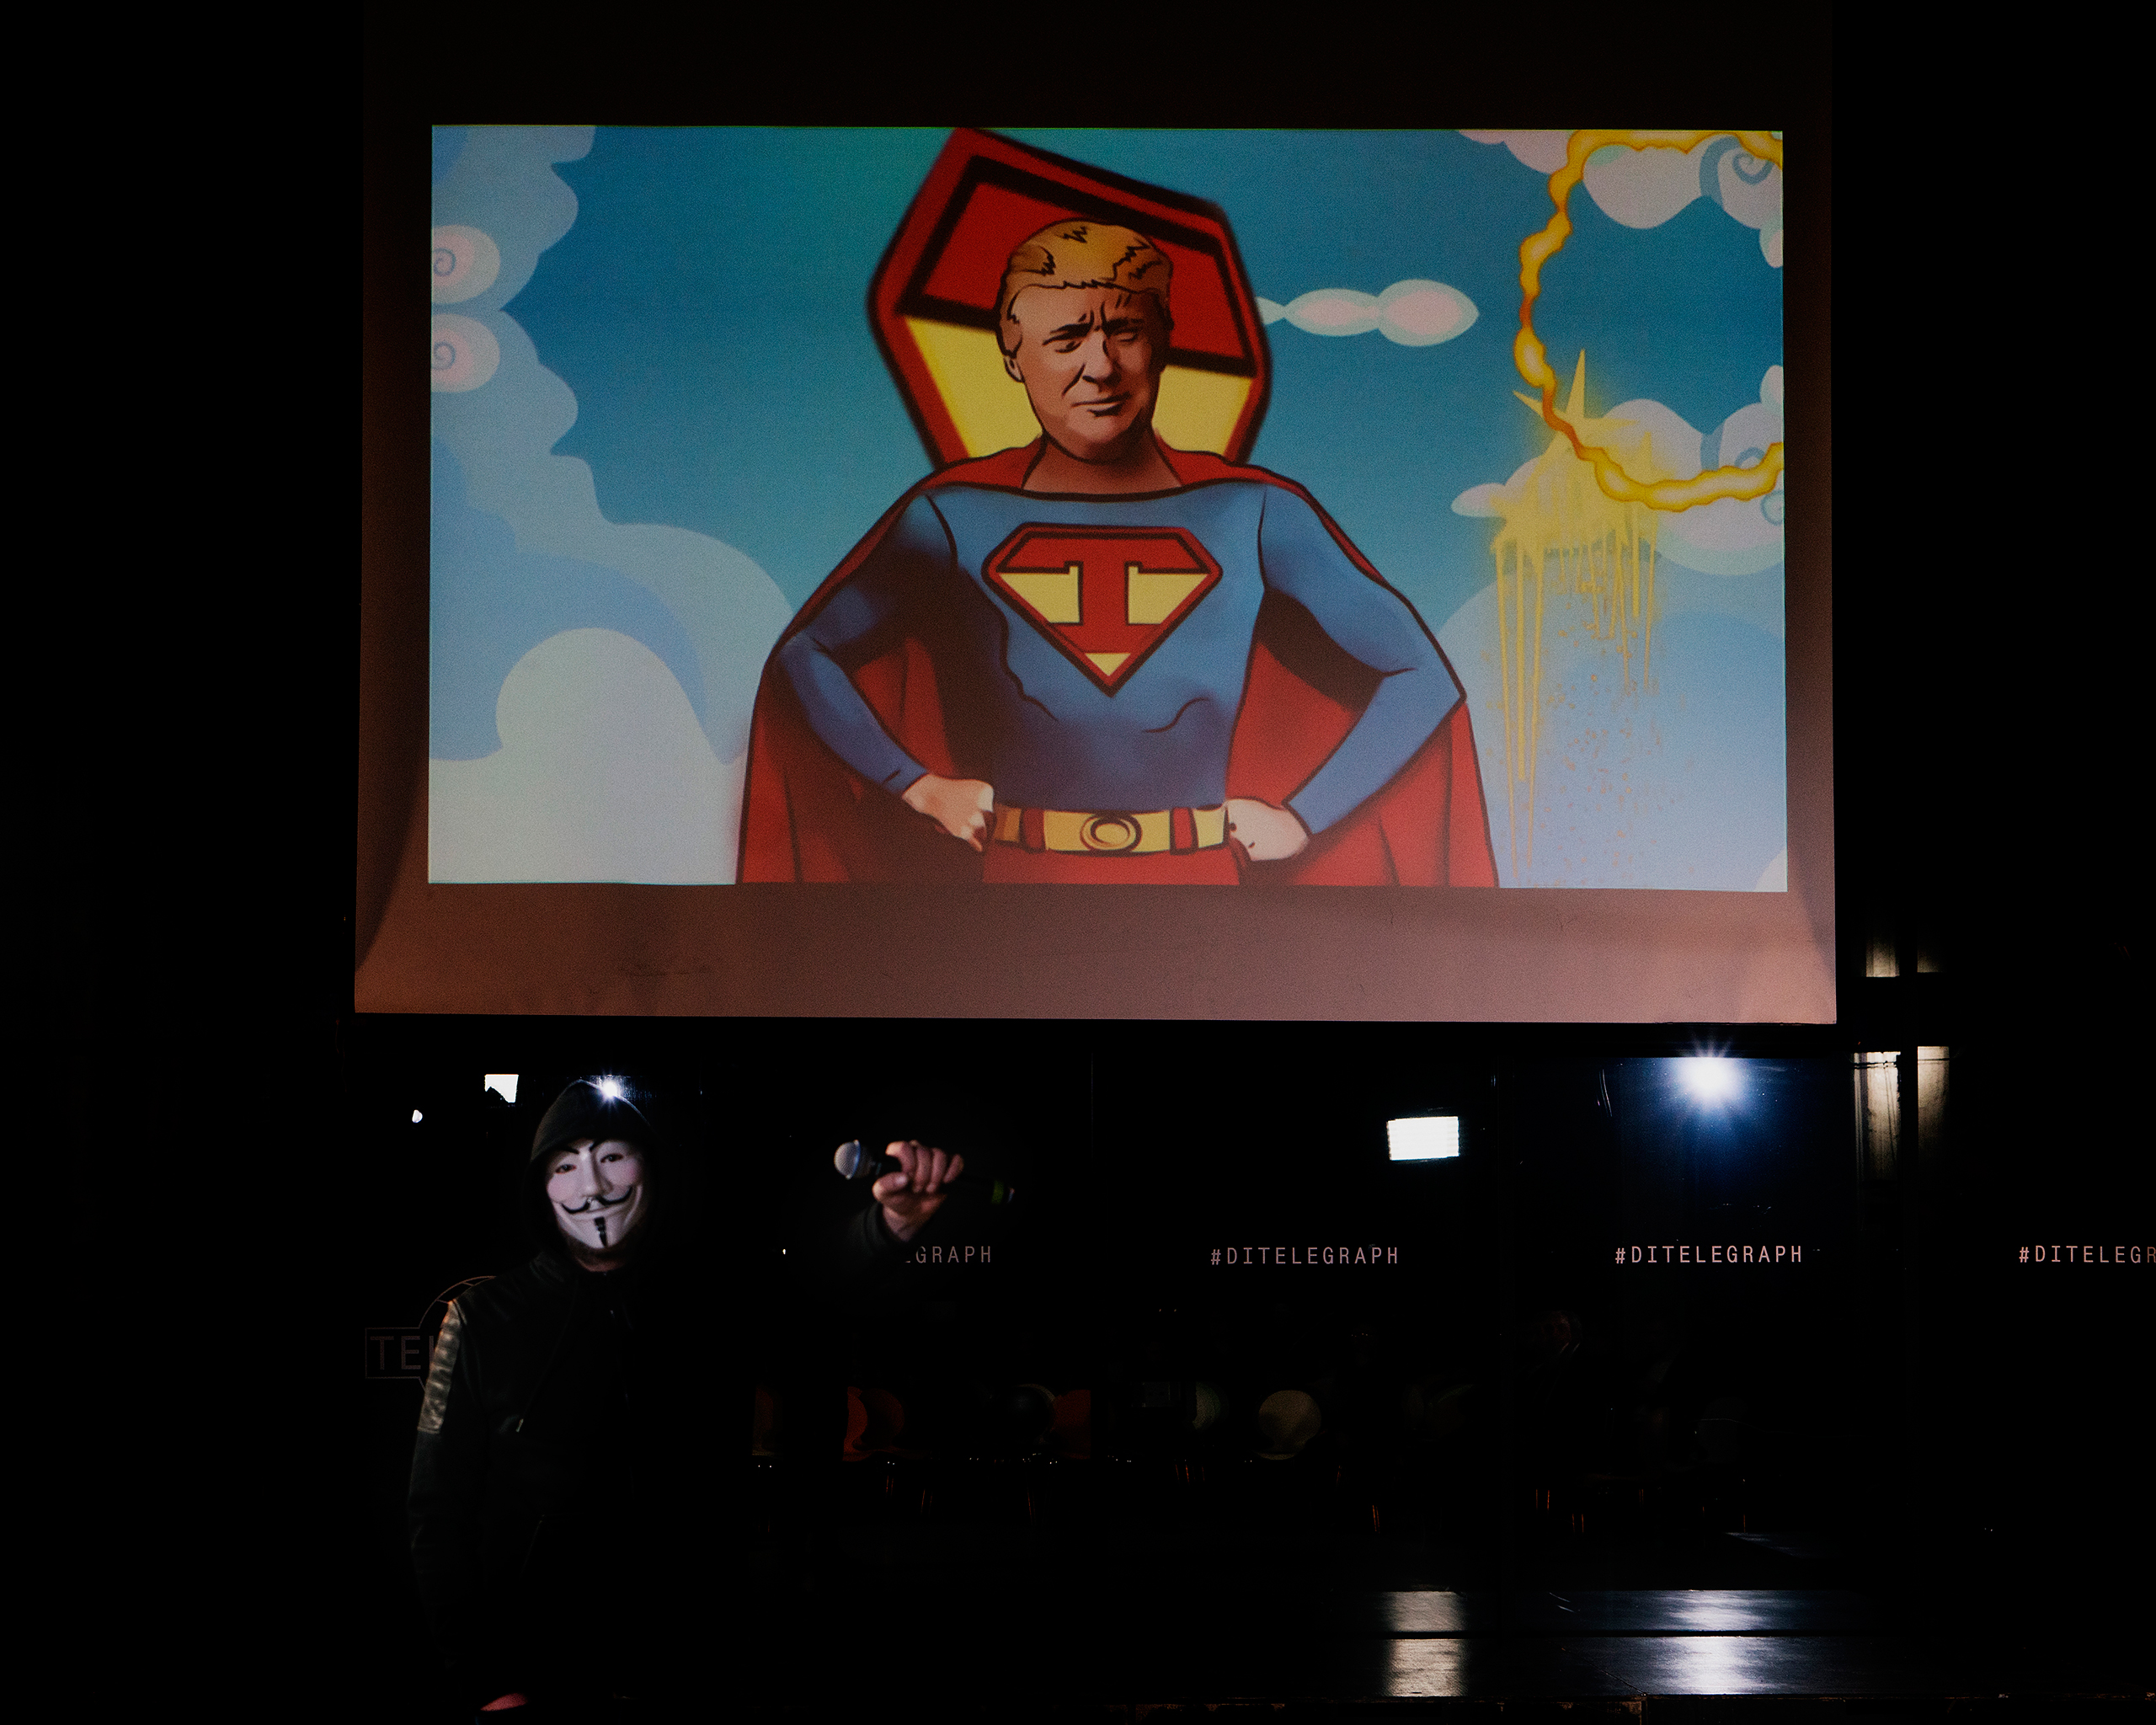 A drawing of Donald Trump is depicted on a Superman-like body on the occasion of his inauguration at an event organized by Maria Katasonova and TzarGrad TV in Moscow on Jan. 20, 2017. Katasonova was a candidate MP in the last Duma elections.